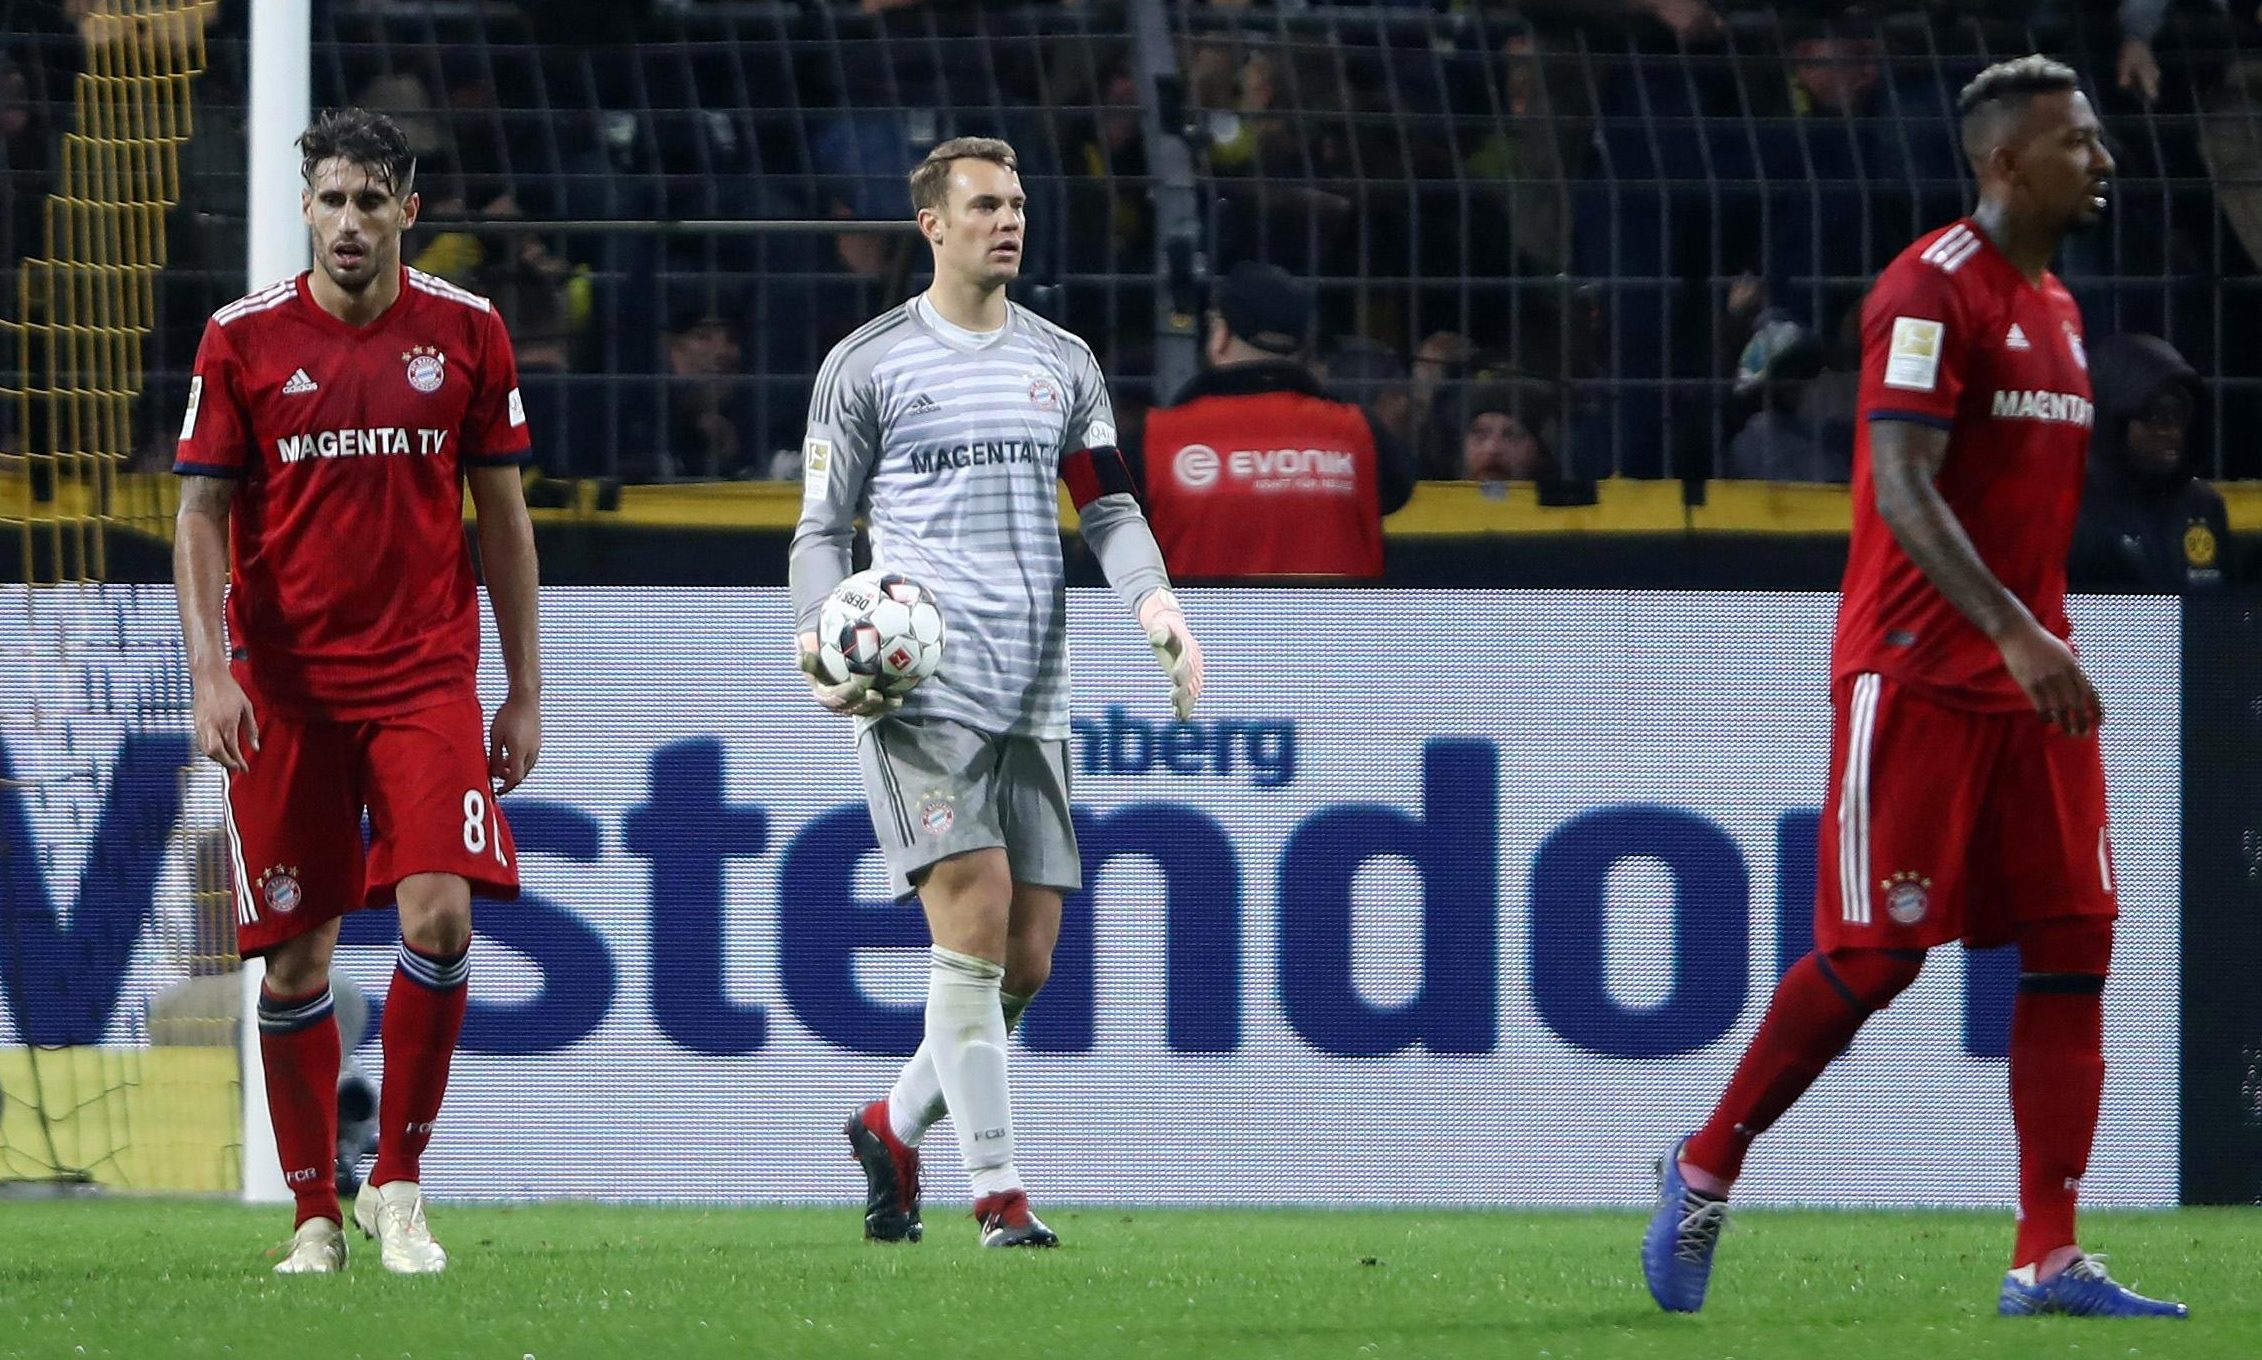 Its not just Bayern's goalkeeper who's looked poor